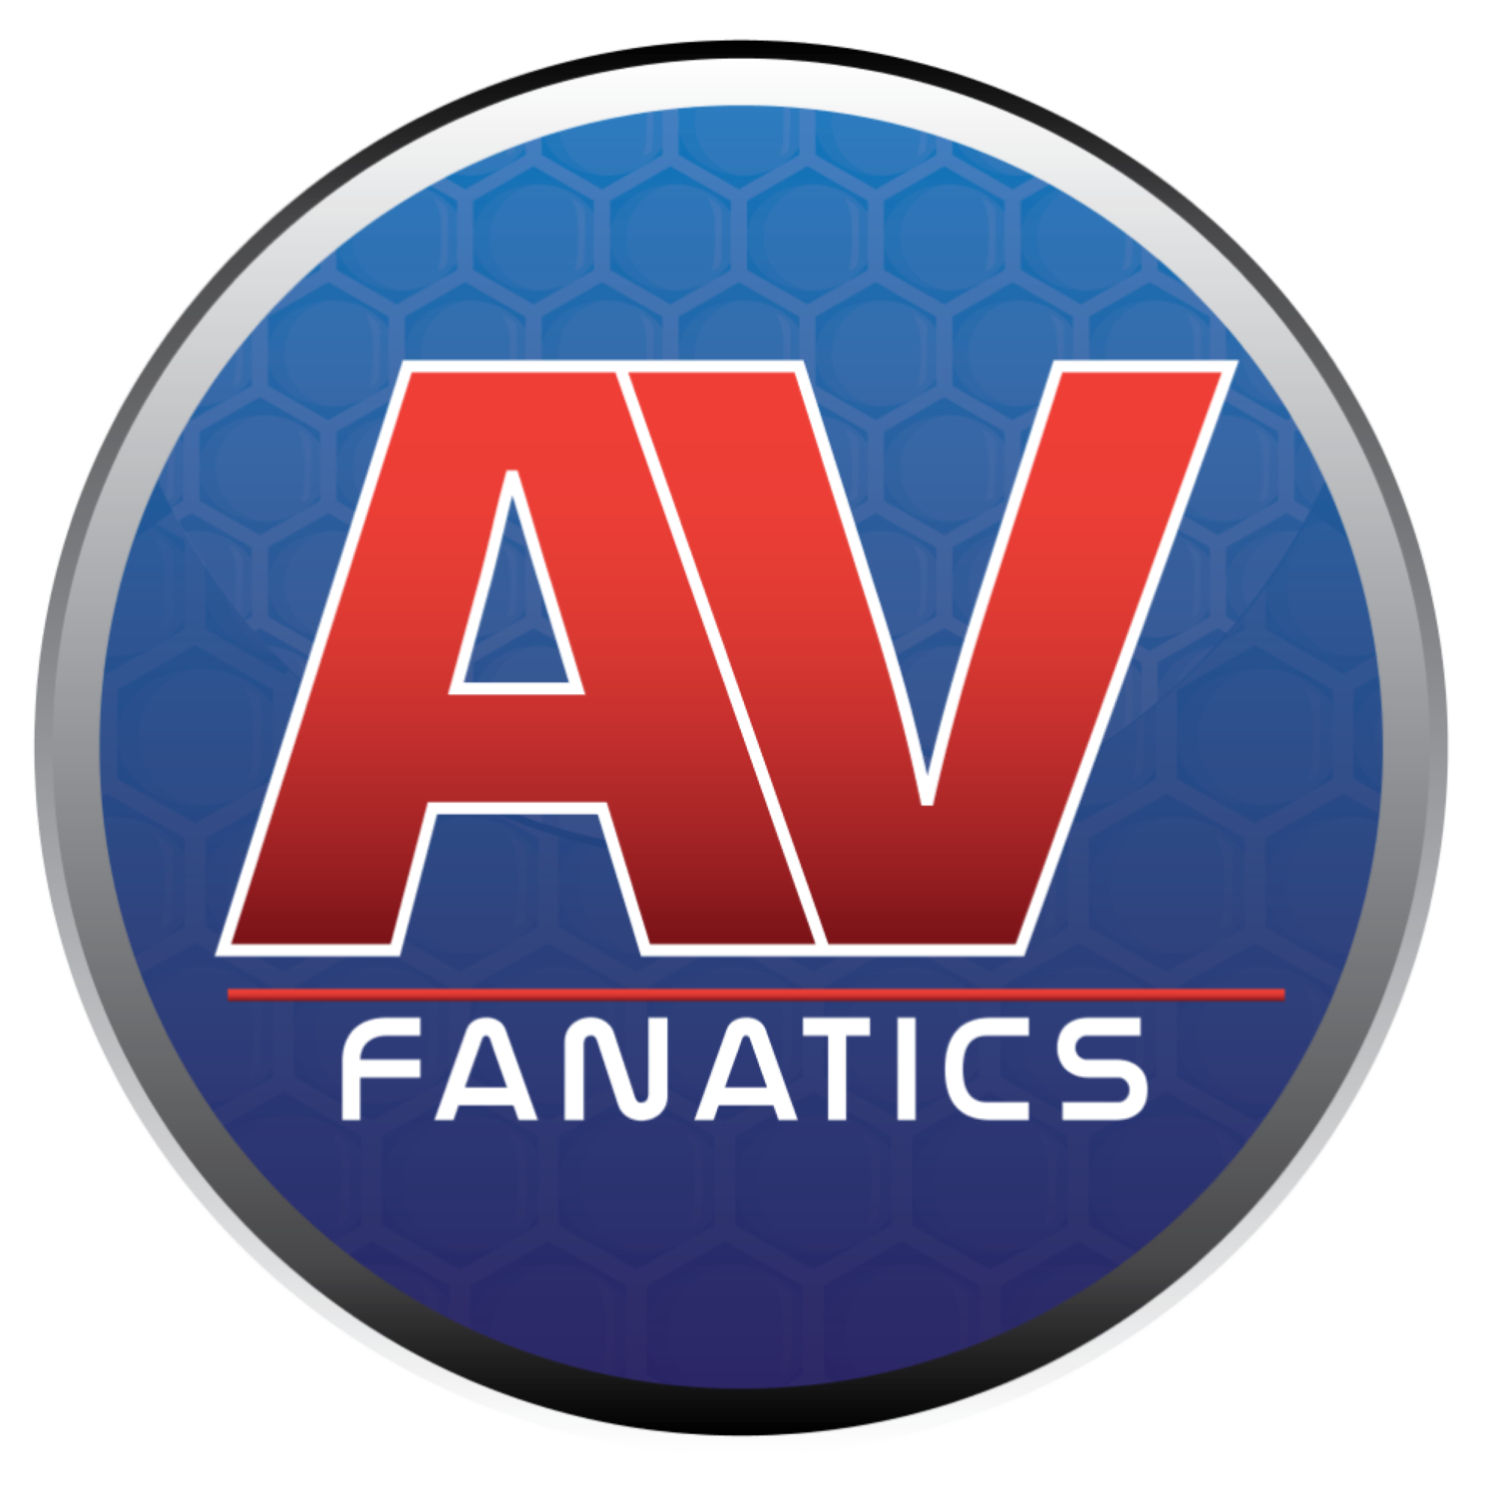 AV Fanatics Ltd